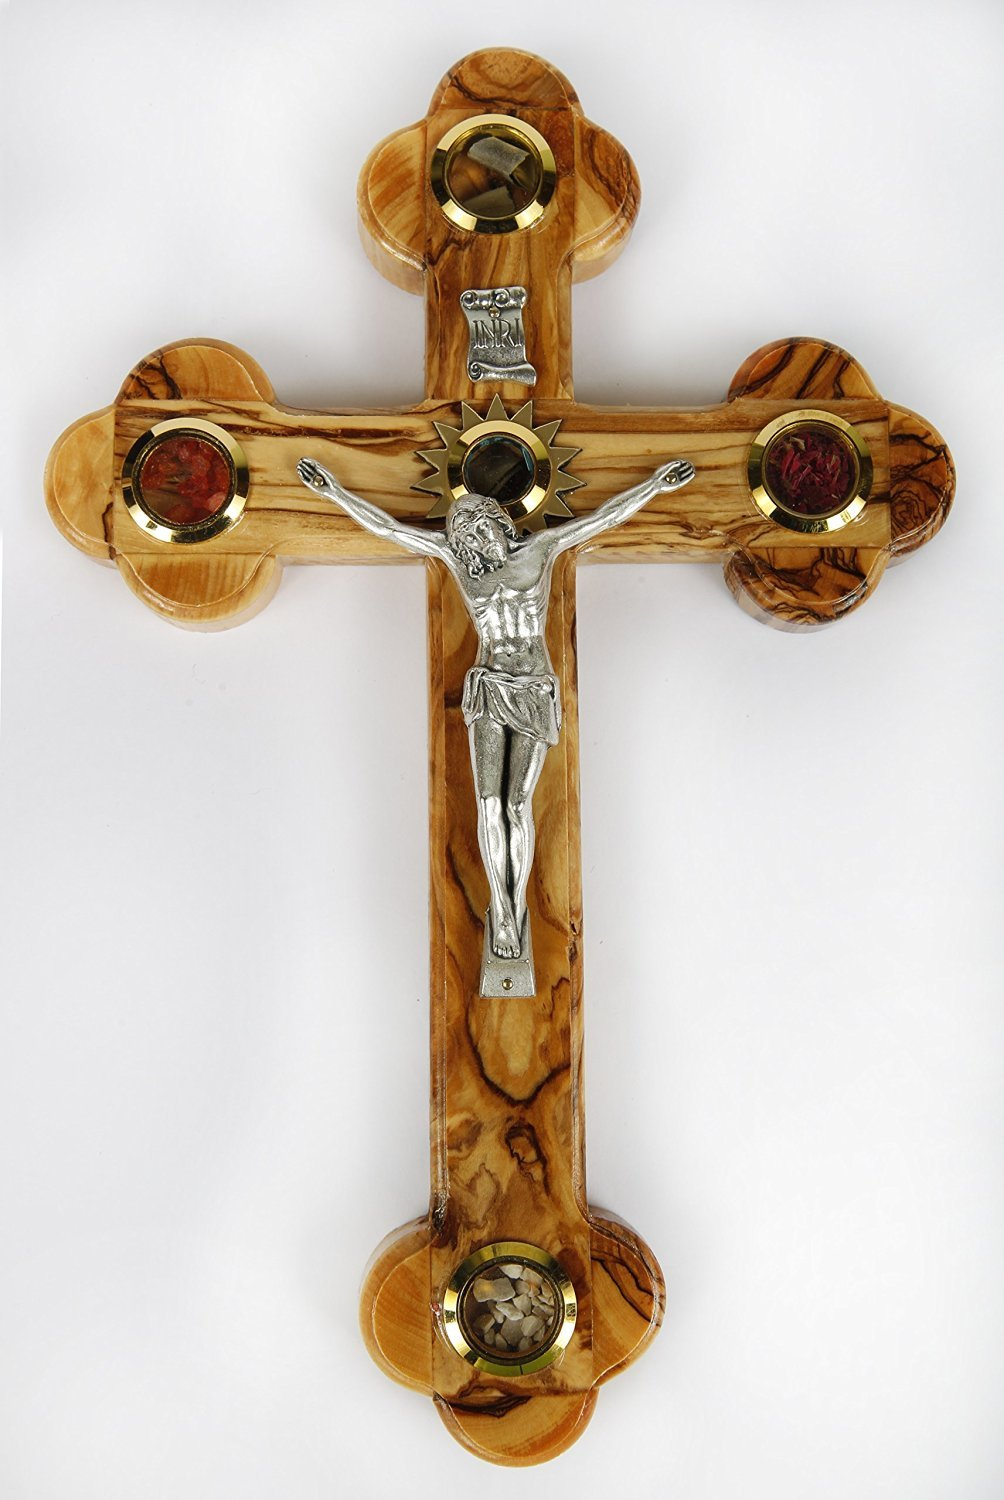 Olive Wood Crucifix / Wall Cross adorned with olive leaves, frankincense, flowers and stones from Jerusalem Hand Crafted by Artisans in Bethlehem (the heart of the holy land). by Bethlehem Gifts TM